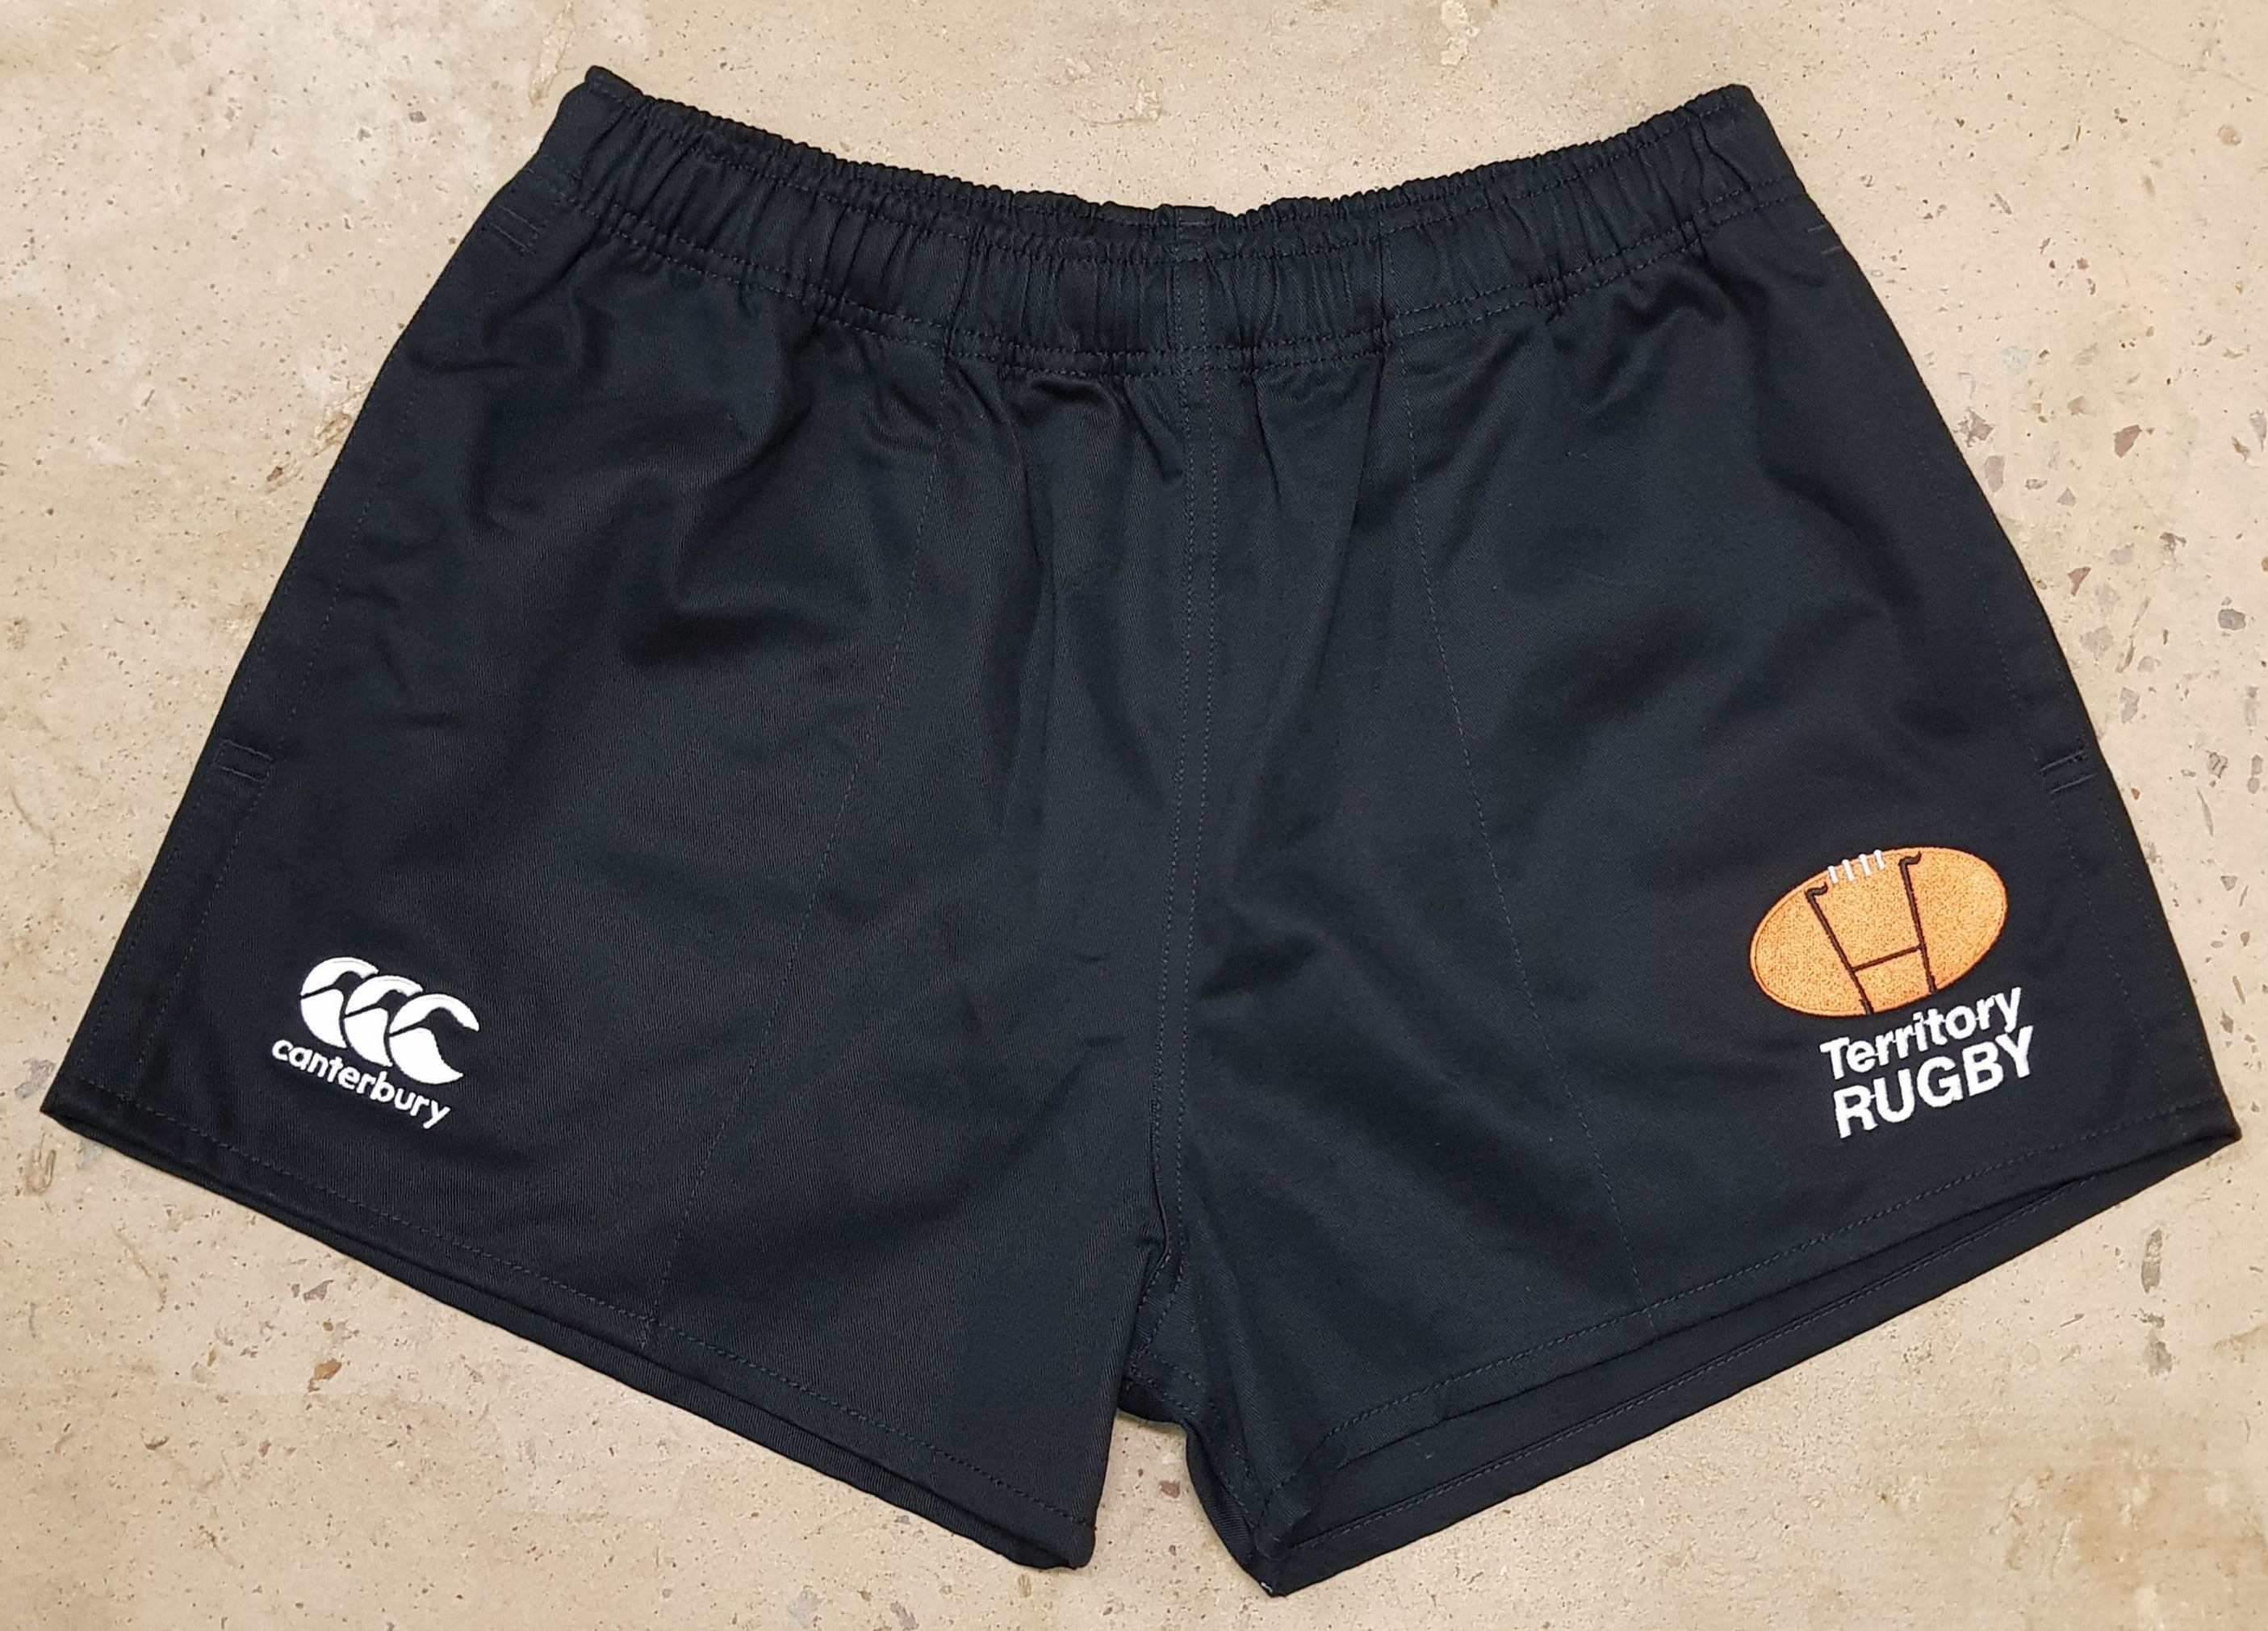 Territory Rugby Rugged Drill Short